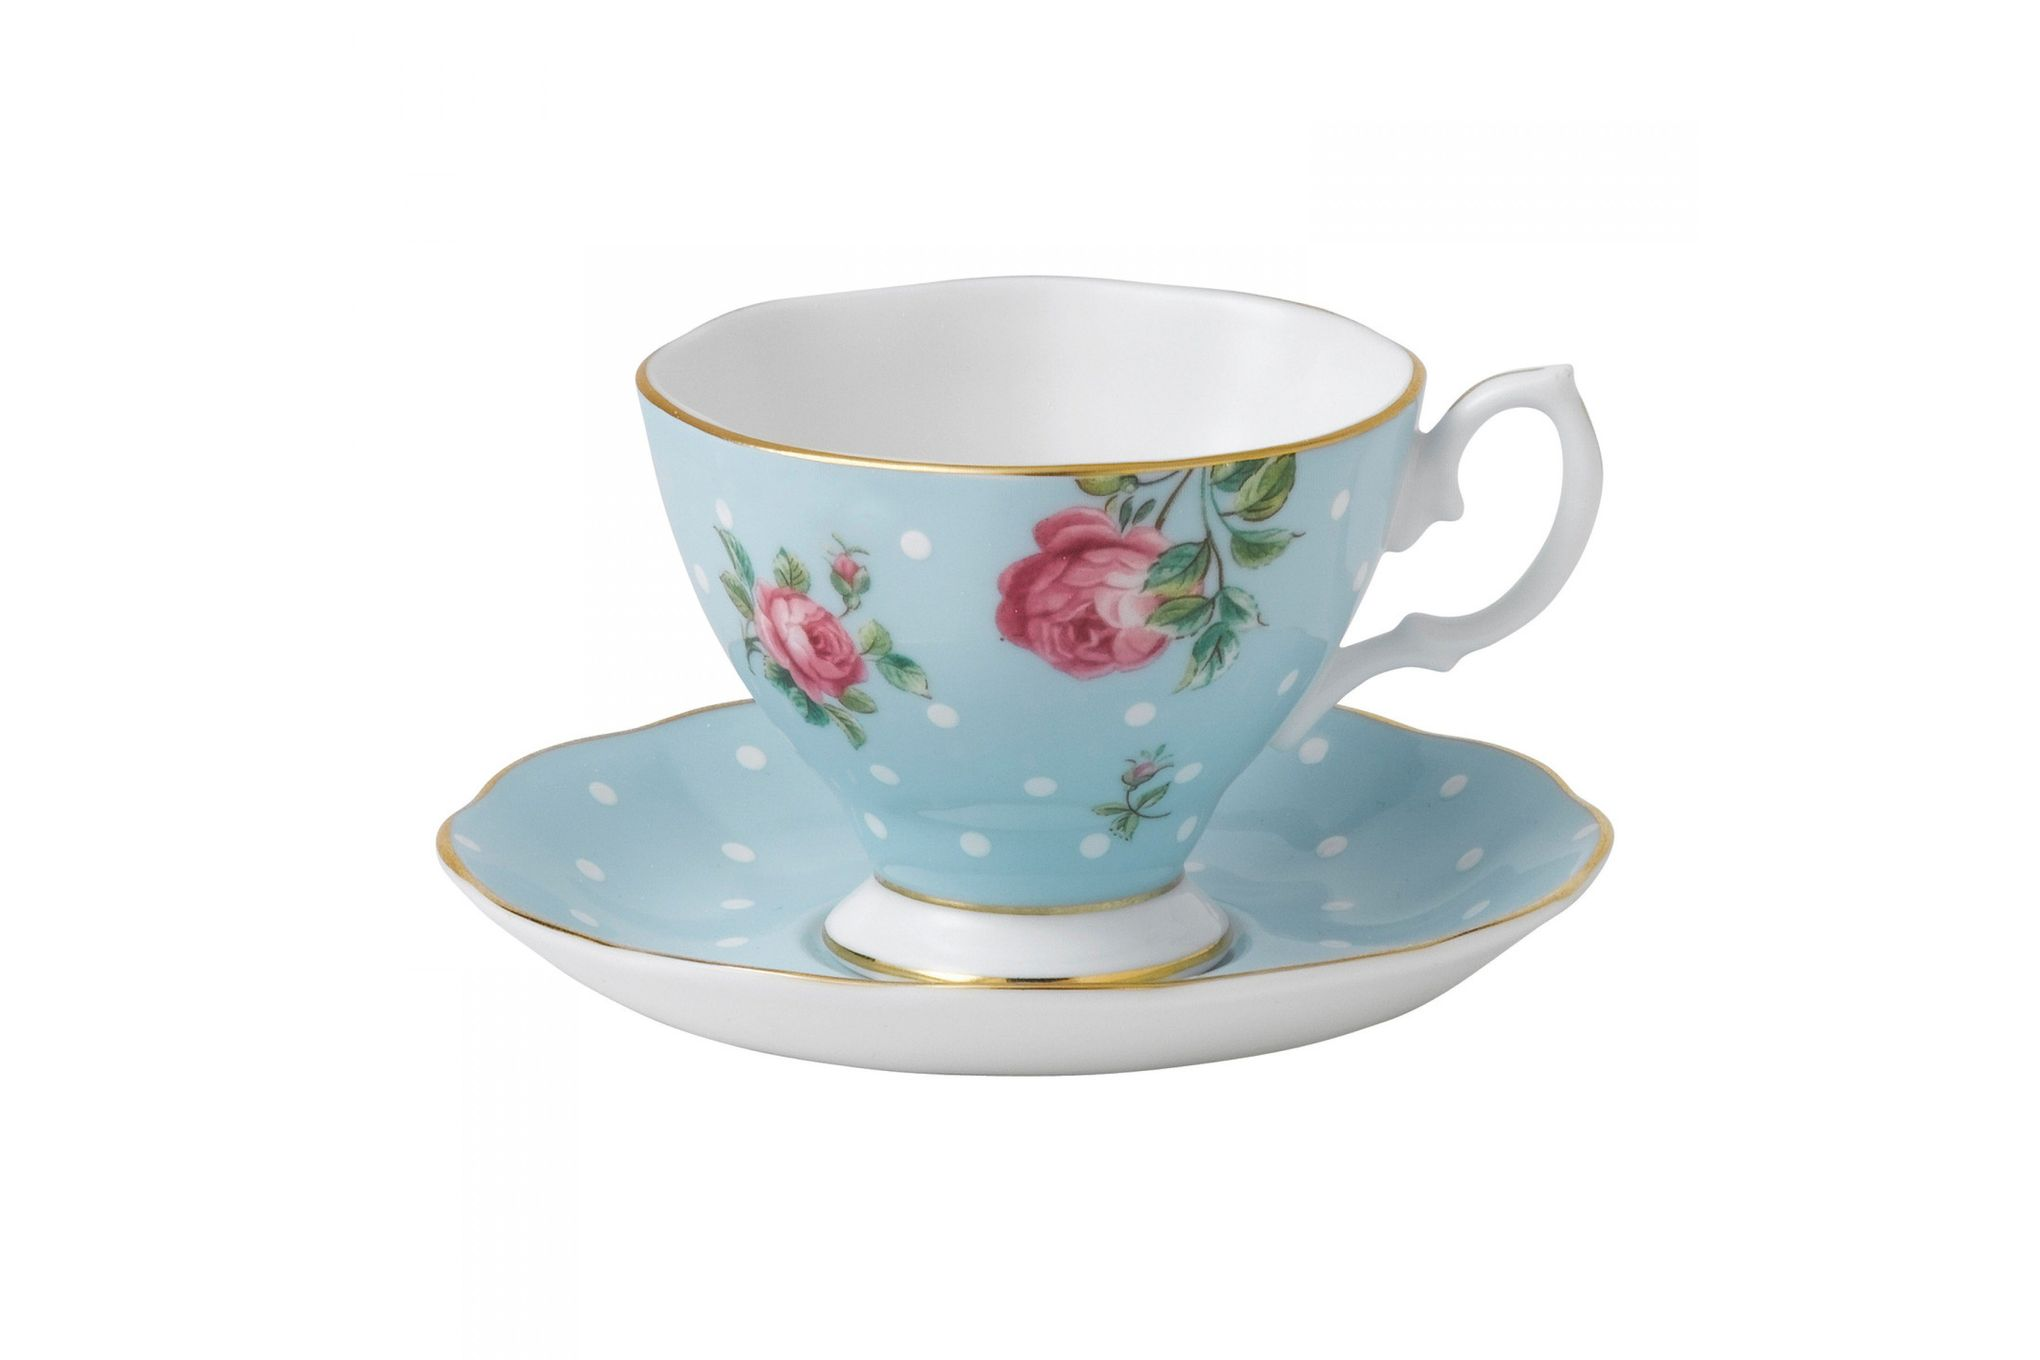 Royal Albert Polka Blue Espresso Cup & Saucer Boxed thumb 1